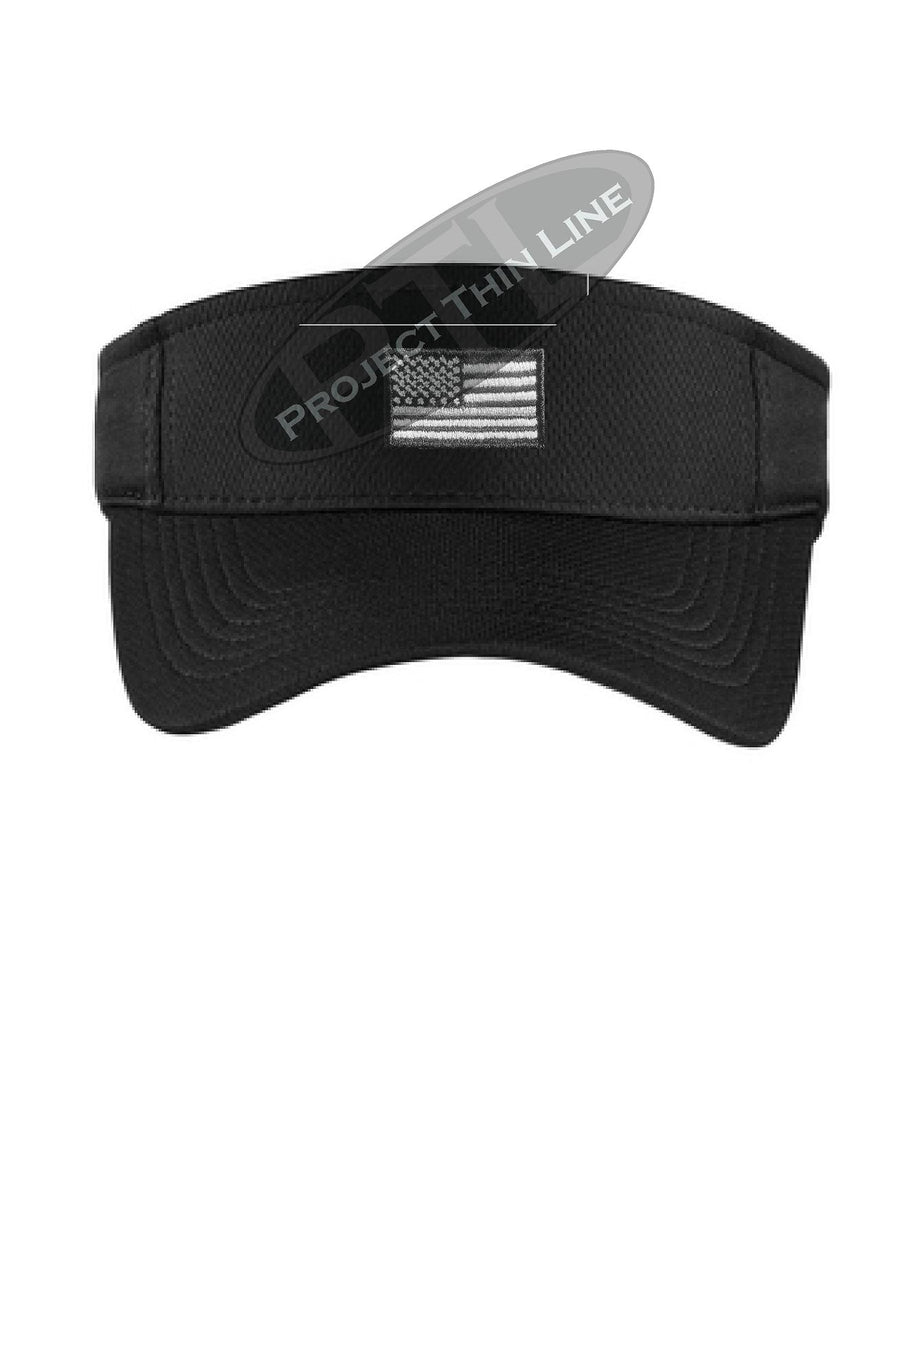 Embroidered Tactical Line Subdued American Flag Visor